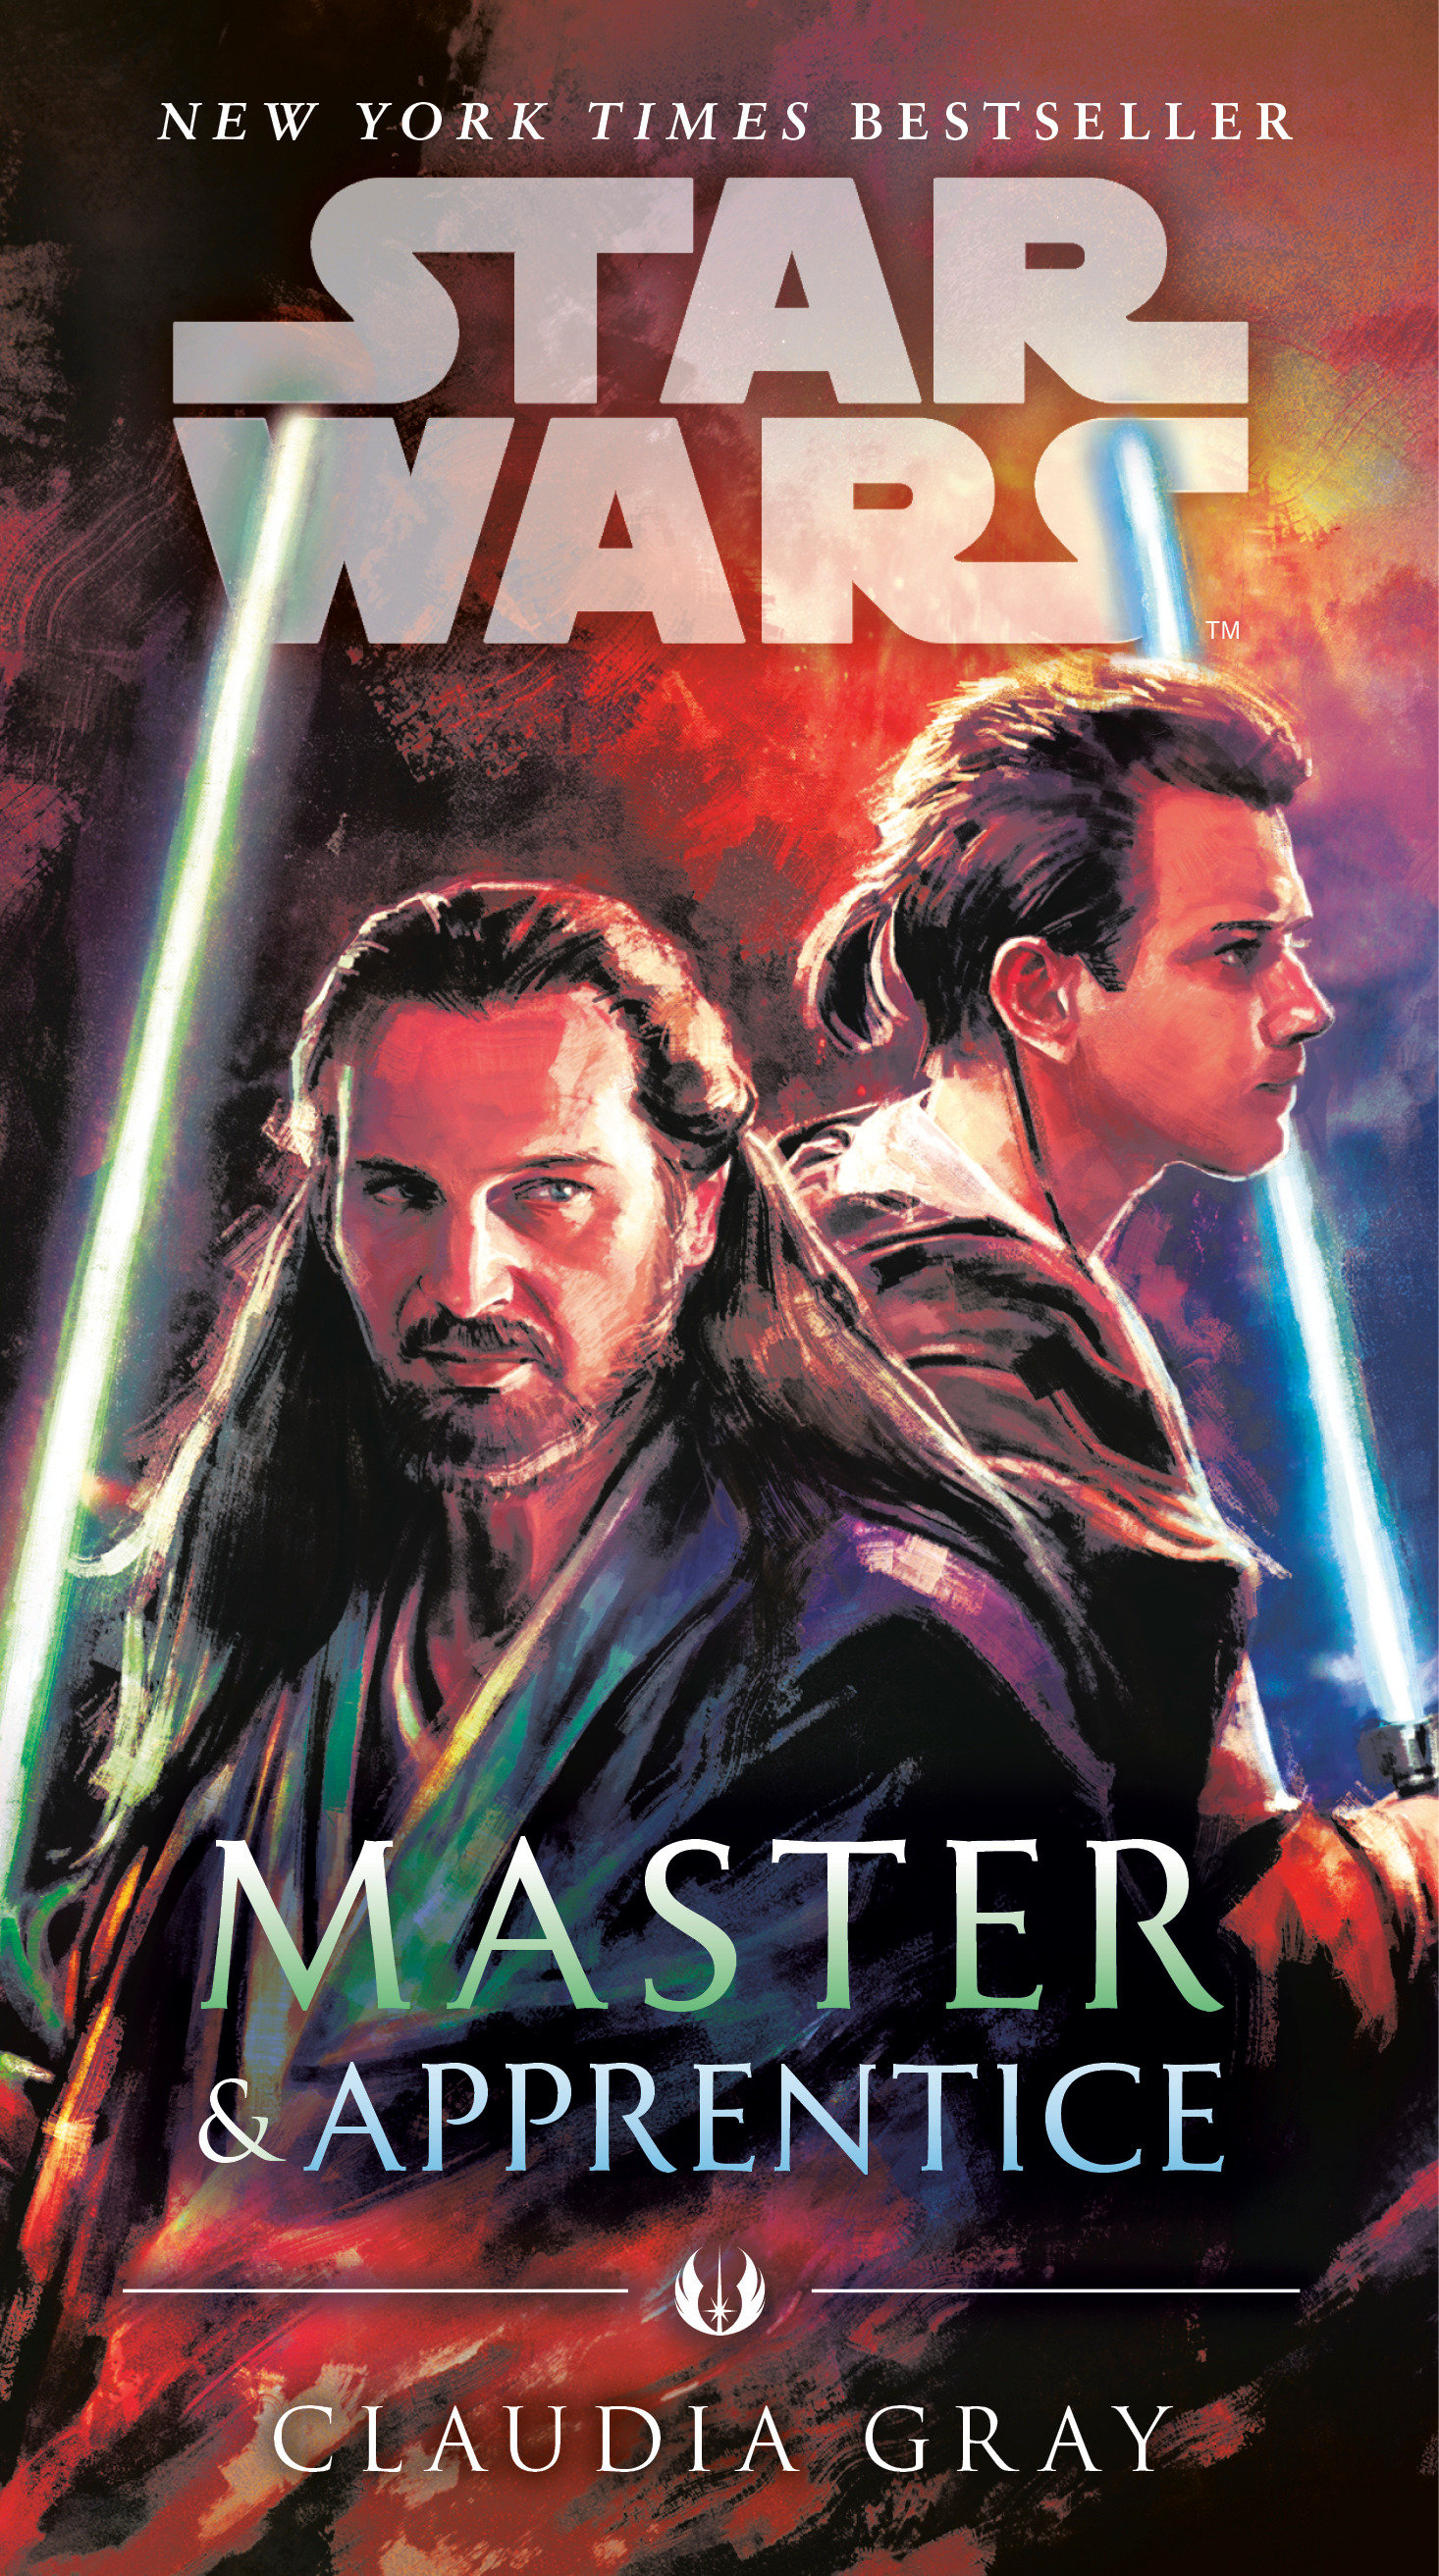 Master & Apprentice (Star Wars) [electronic resource] : New York Times bestseller